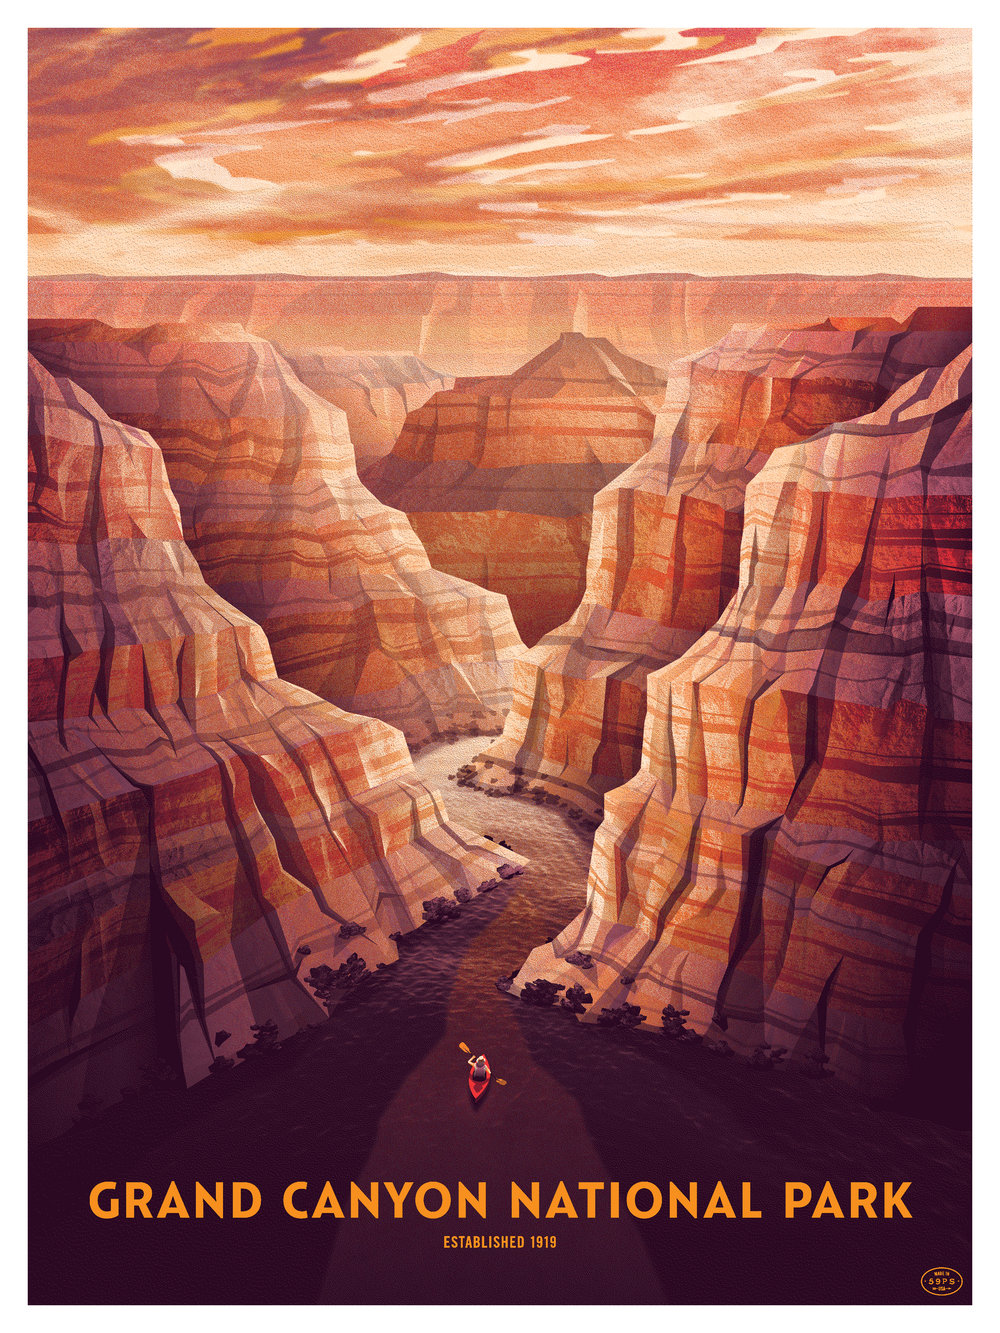 Grand-Canyon-National-Park-DKNG-Fifty-Nine-Parks-Print-Series_rgb.jpg